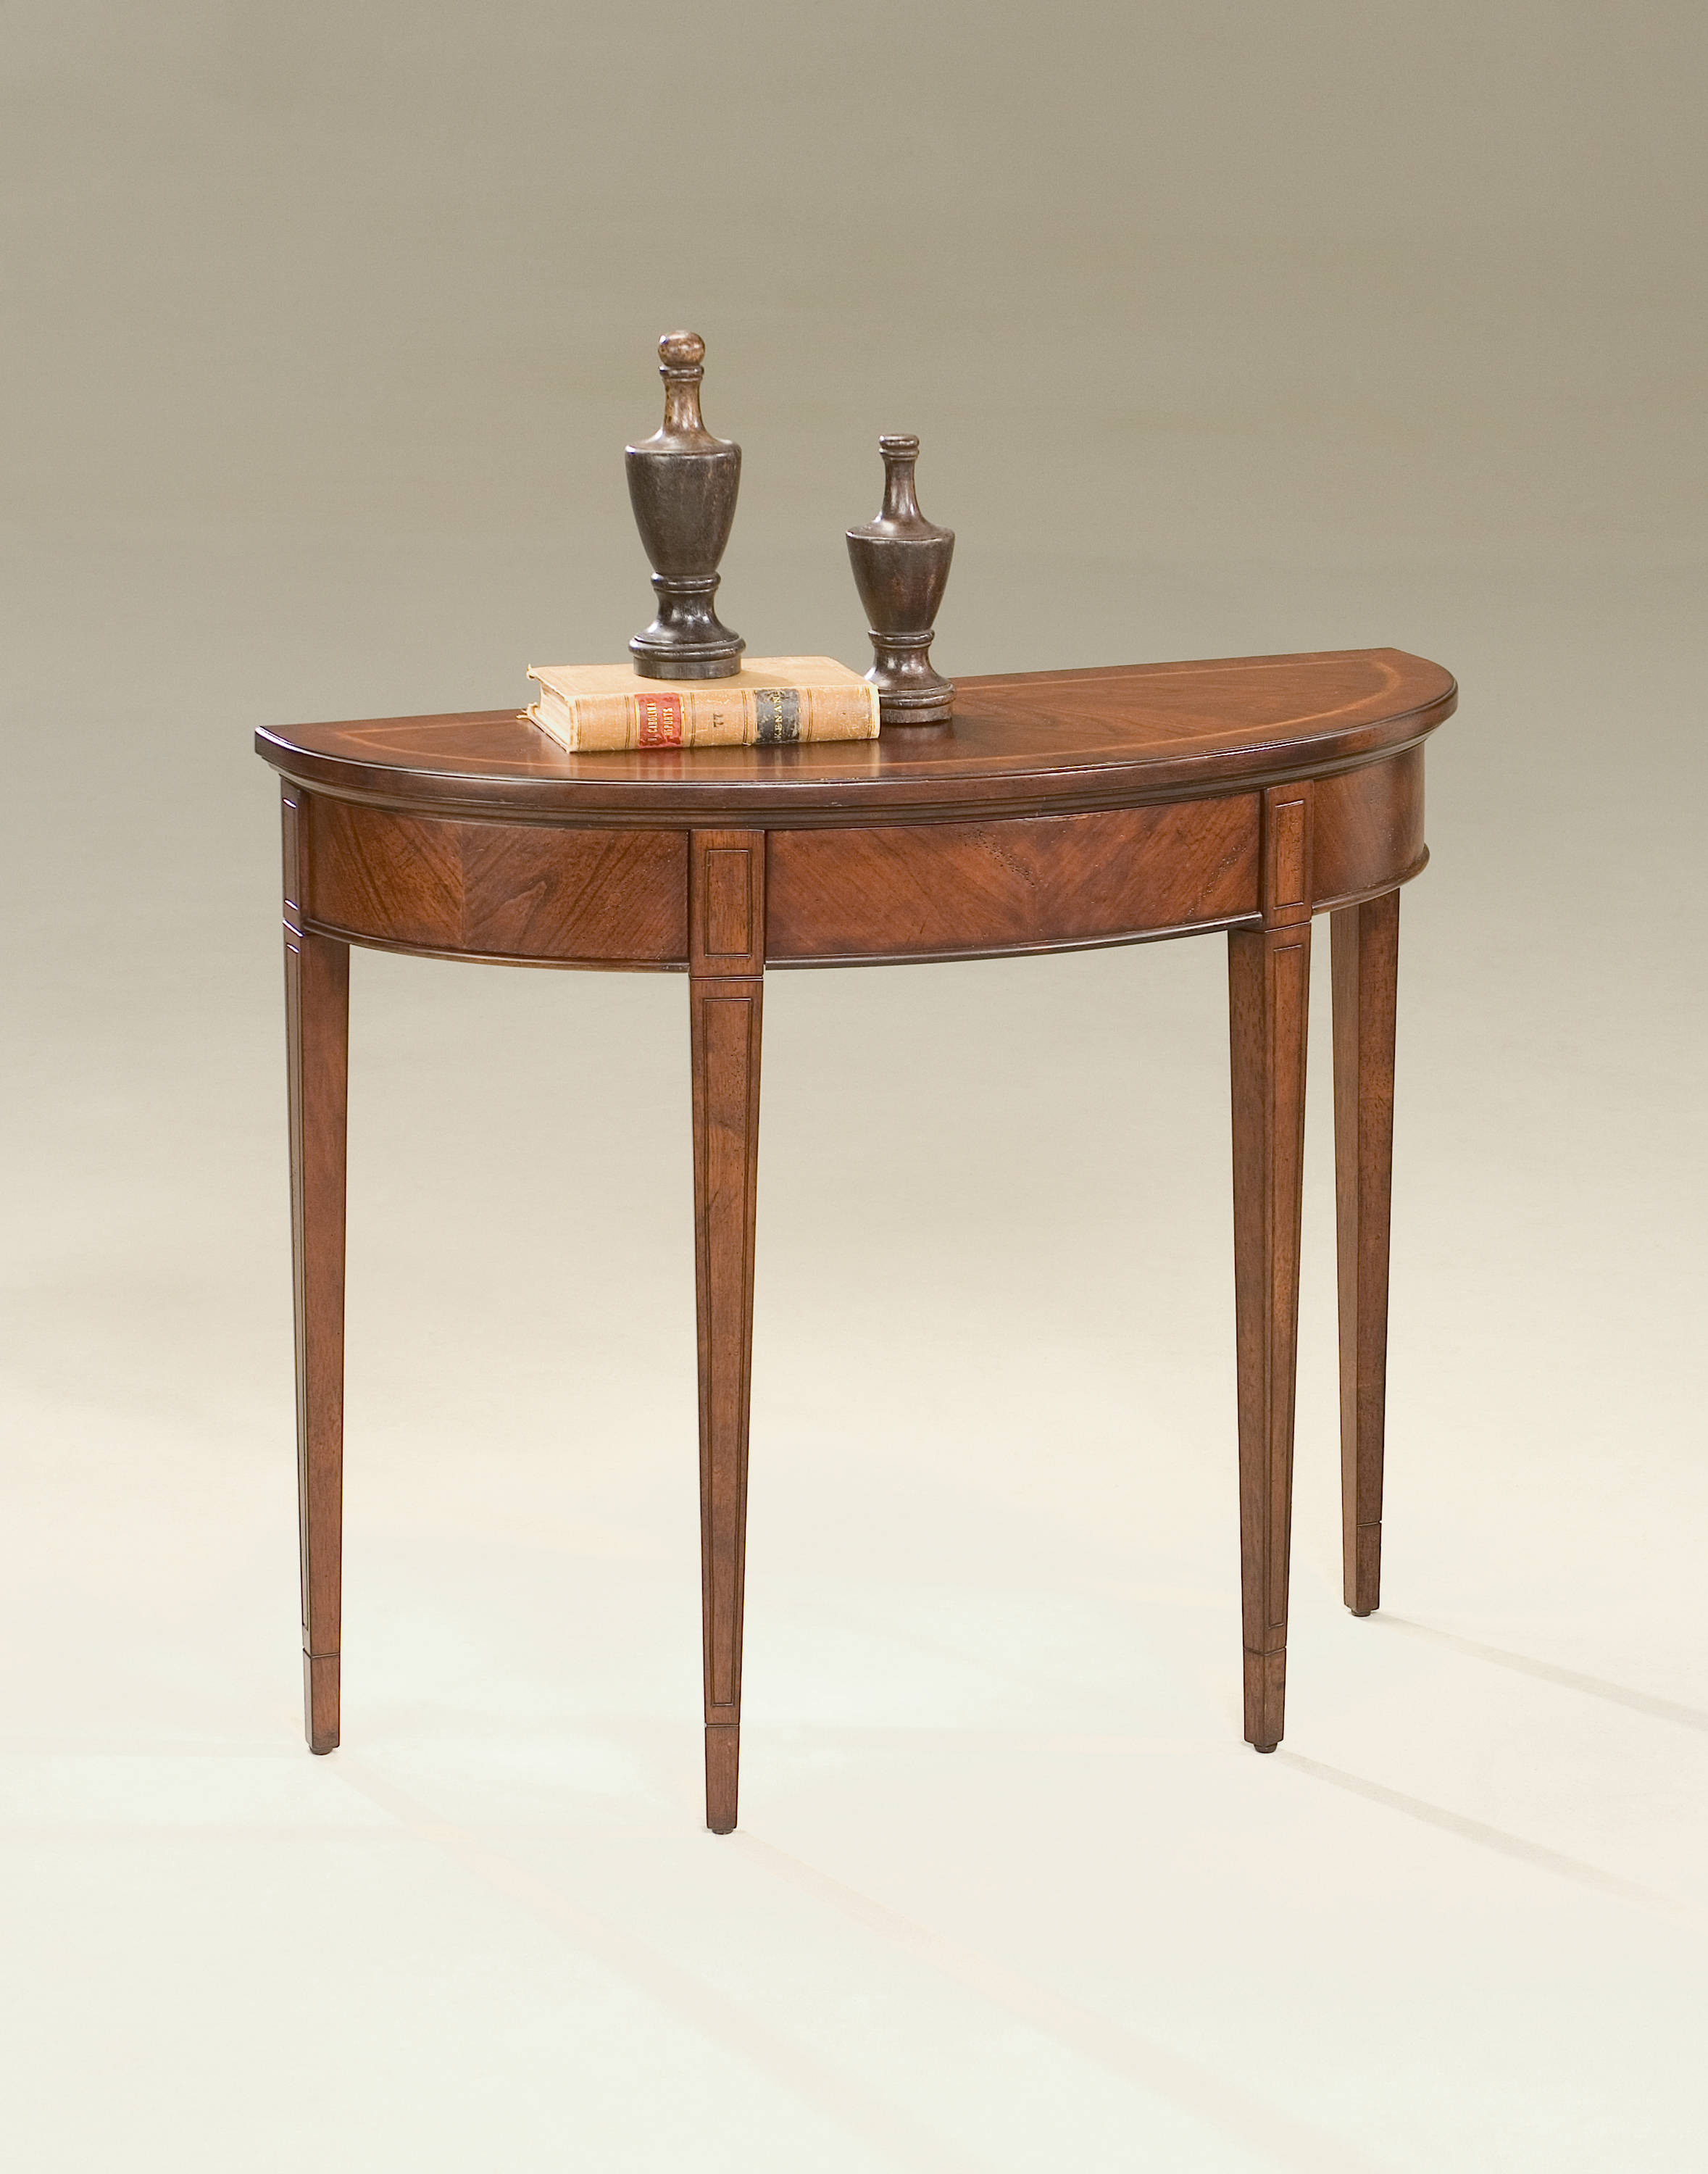 Astounding Butler Specialty Plantation Cherry Hampton Demilune Console Table Pdpeps Interior Chair Design Pdpepsorg